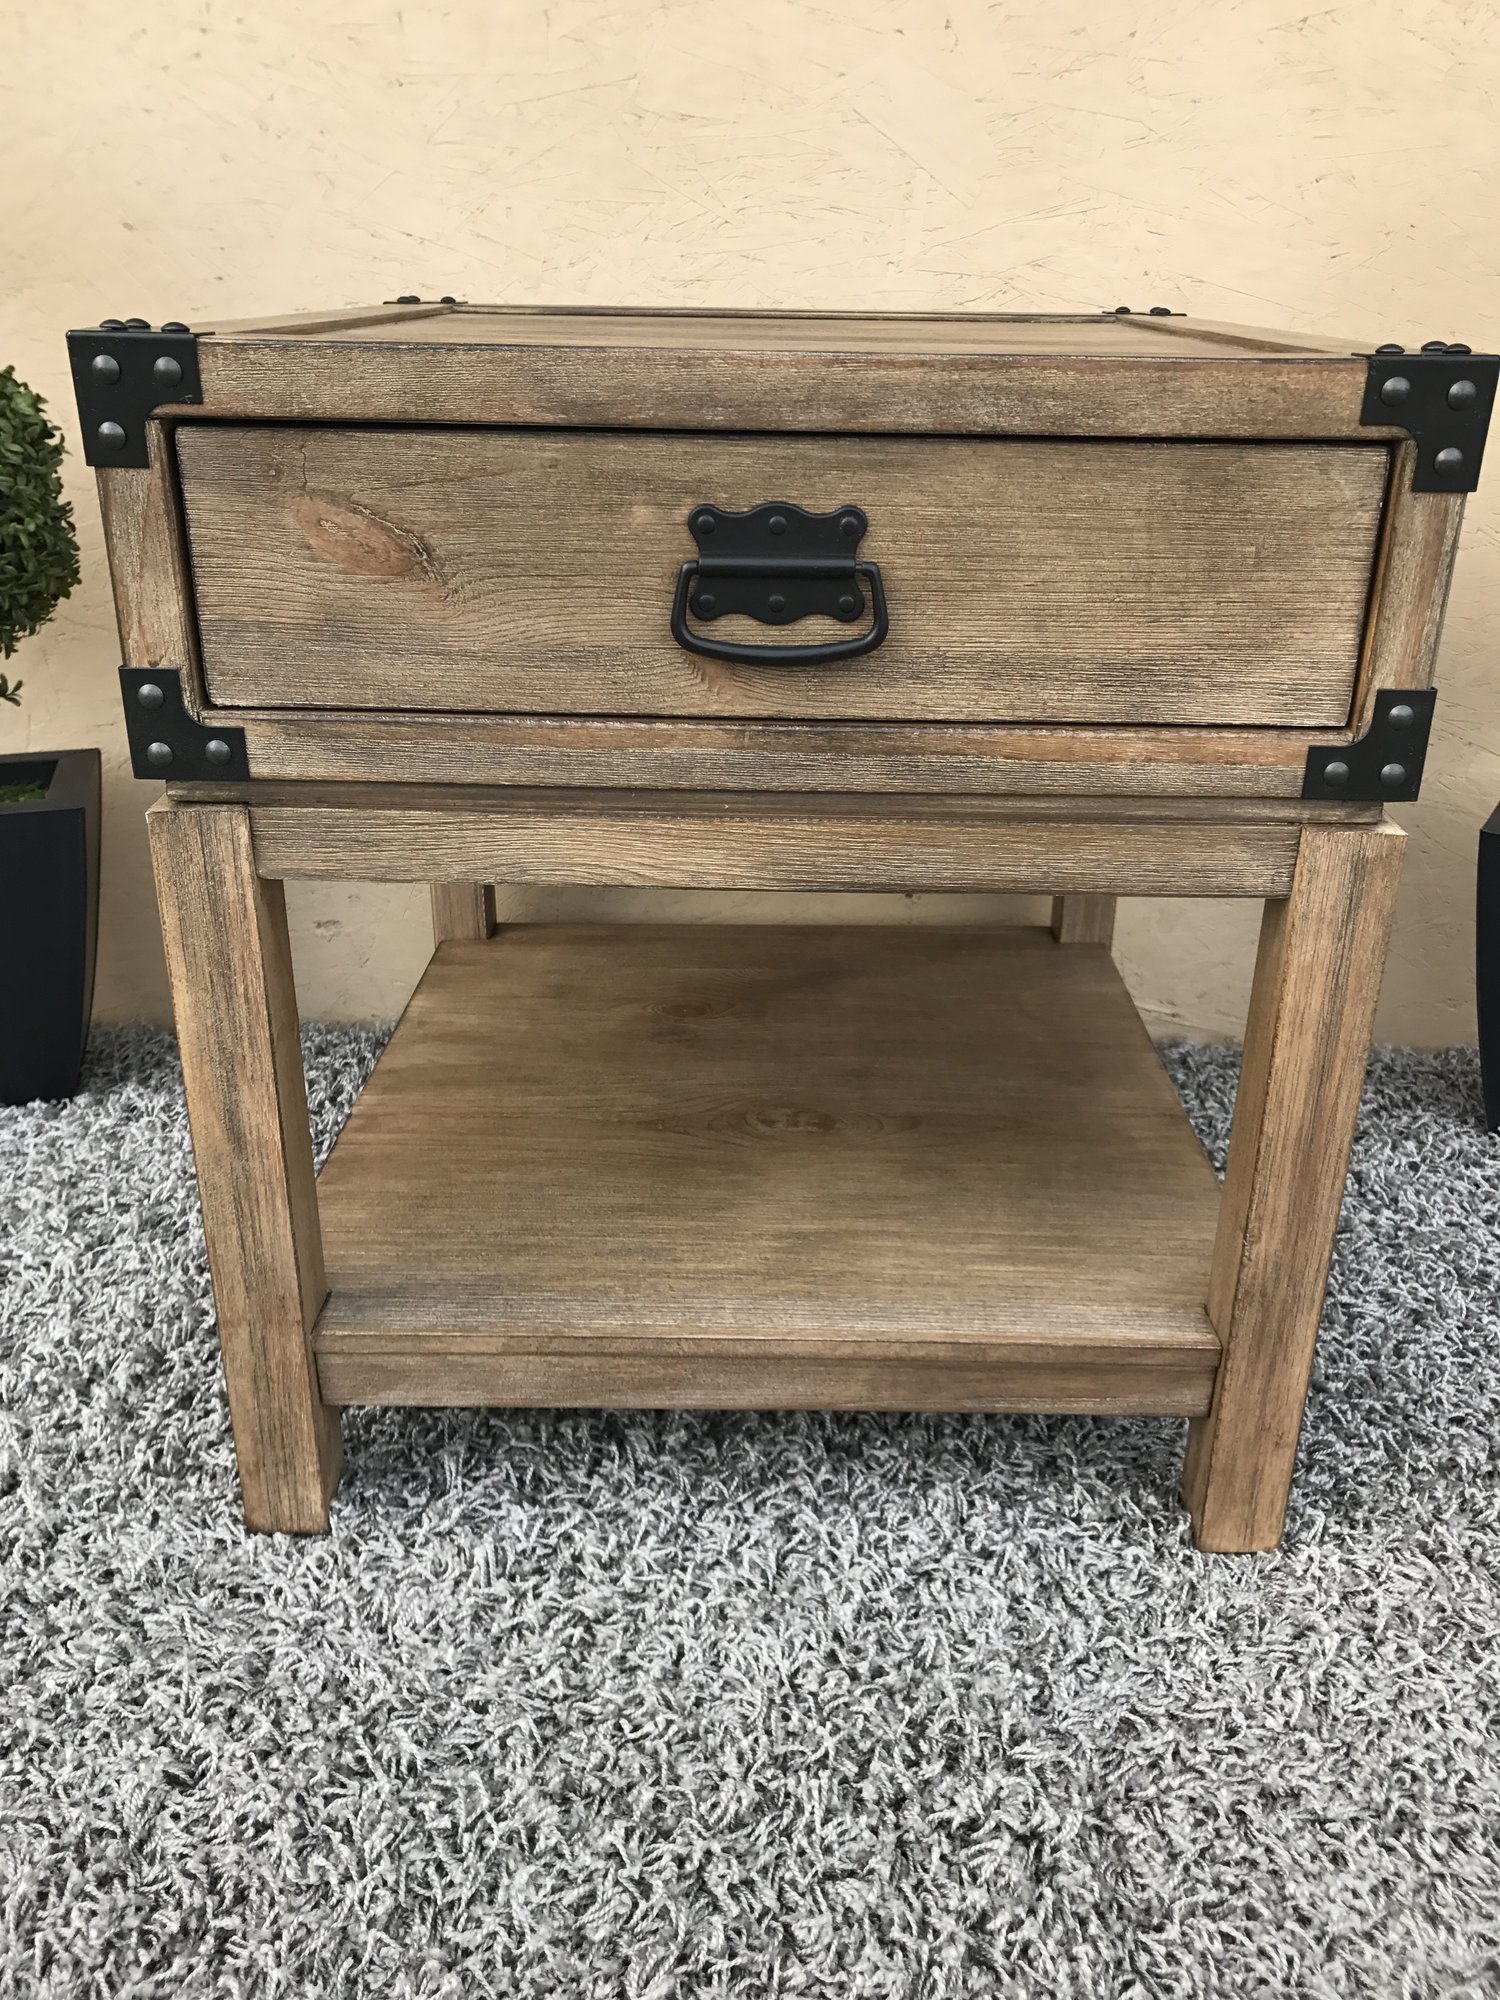 sold treasure trove accents carmel burnished natural finish trunk img accent end table large with storage ikea book shelves carpet door threshold black and silver lamps college